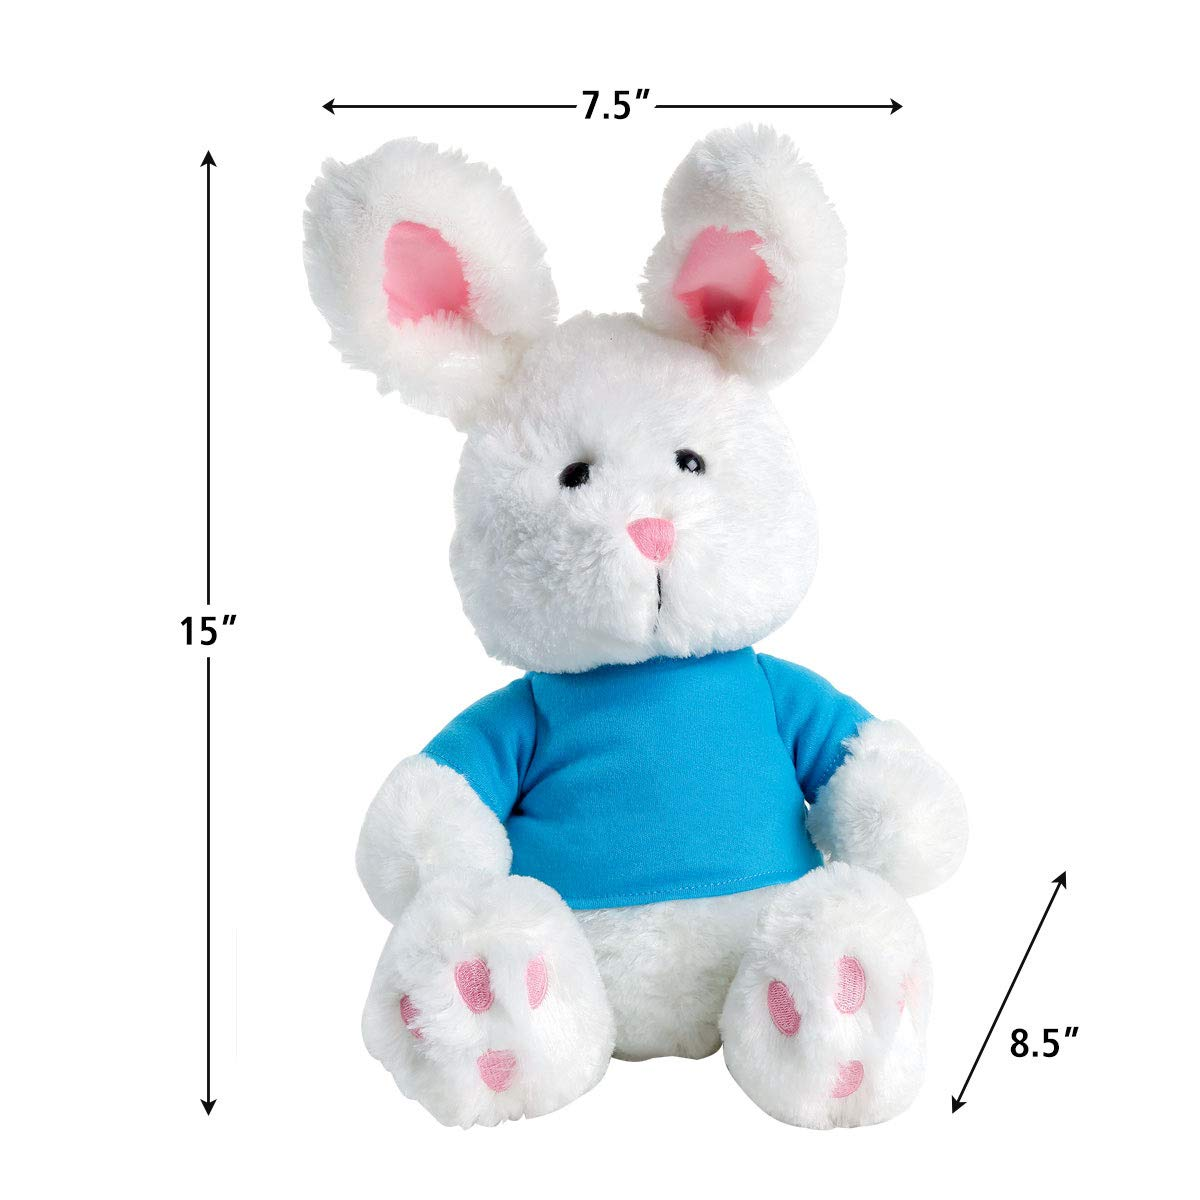 12 Inches Lillian Vernon Easter Bunny Stuffed Animal with Pink T-Shirt